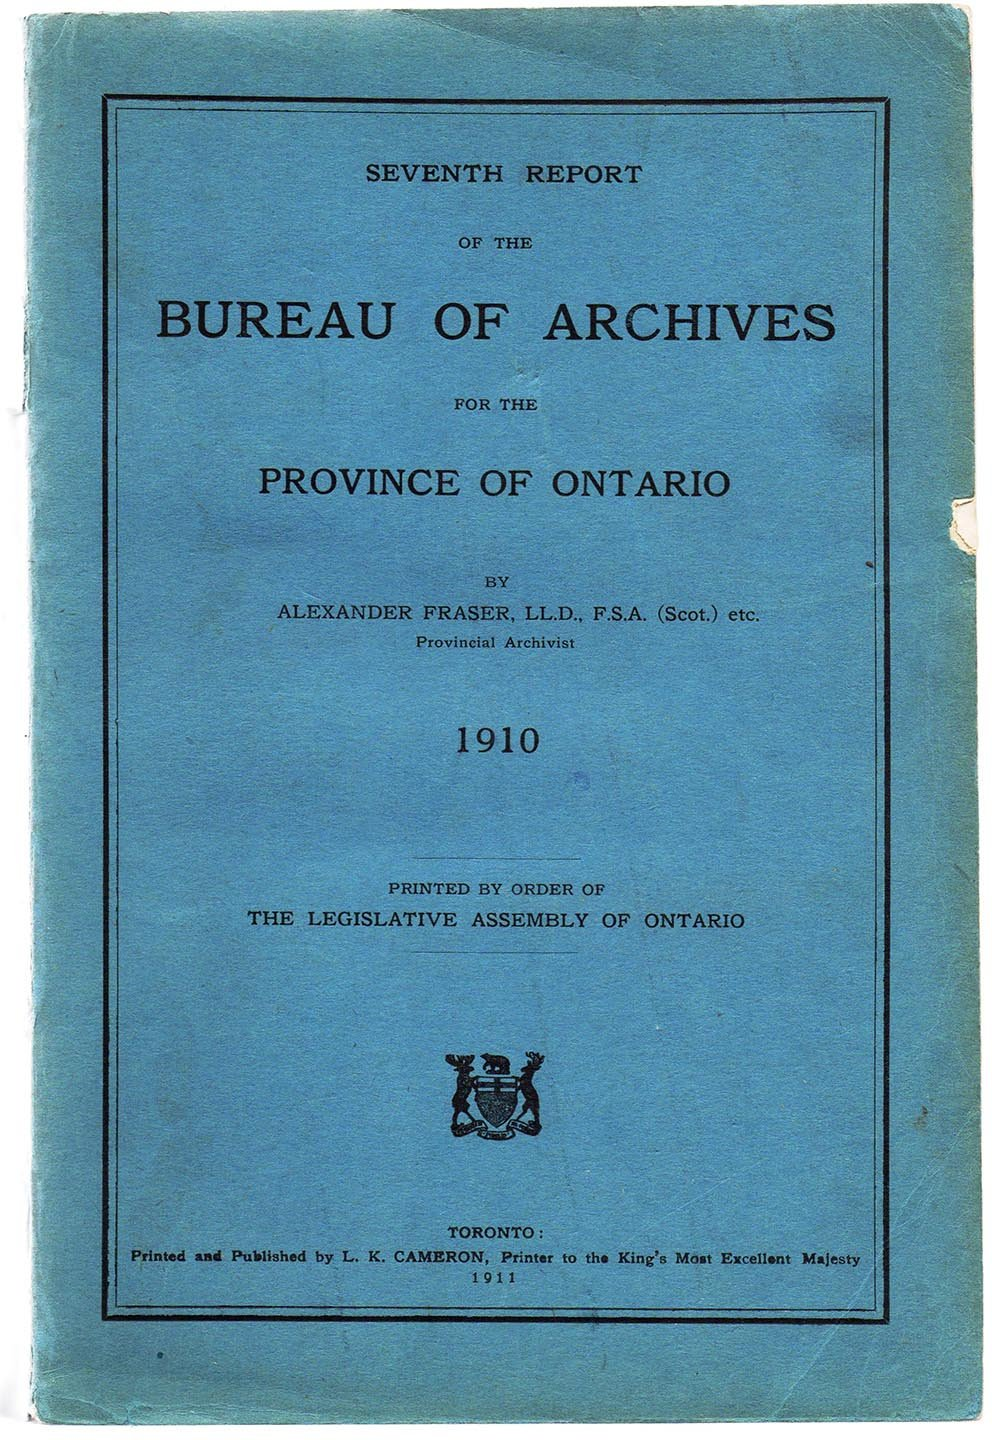 Seventh Report of the Bureau of Archives for the Province of Ontario 1910